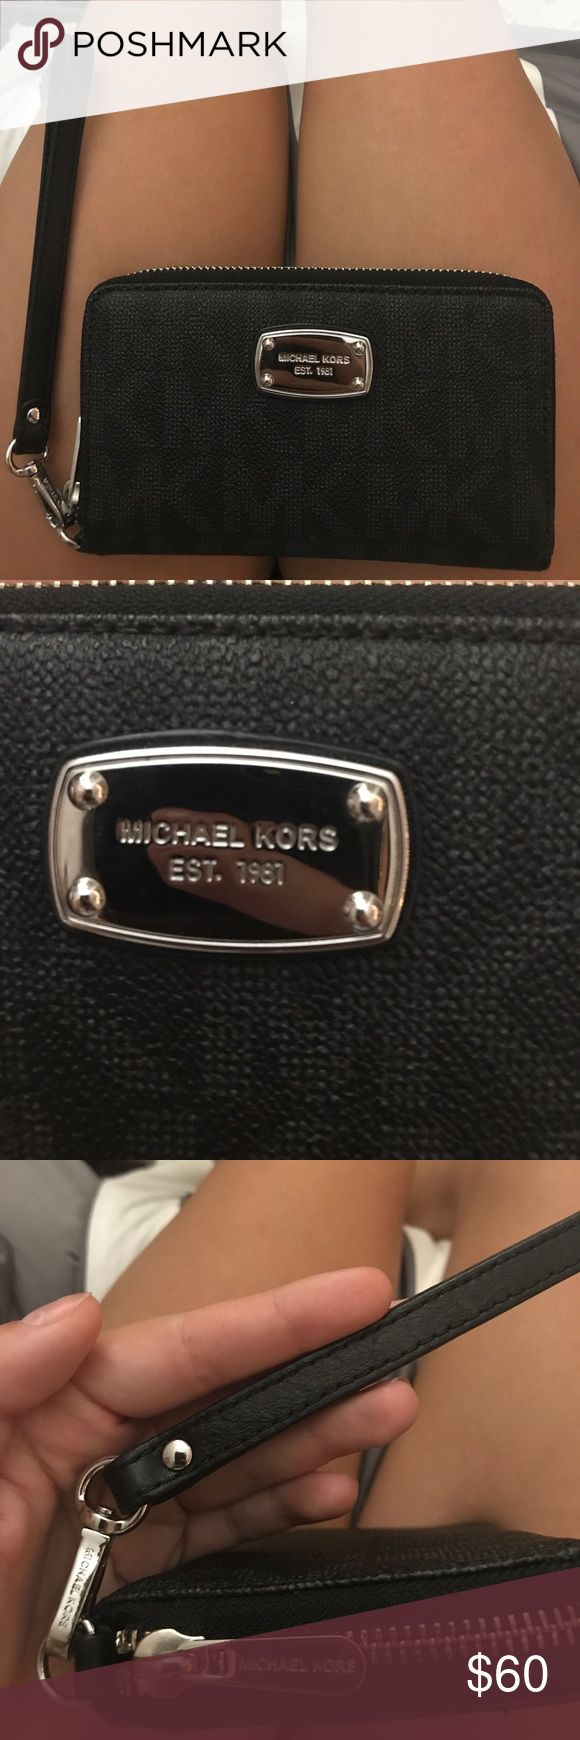 Michael Kors Logo Wallet Wristlet Black logo Michael Kors wallet with clip for wristlet. Card slots and spot for ID along with two pockets the length of the wallet. Easily fits an iPhone 7. Perfect condition. Bundle with matching bag for an extra discount. Michael Kors Bags Wallets